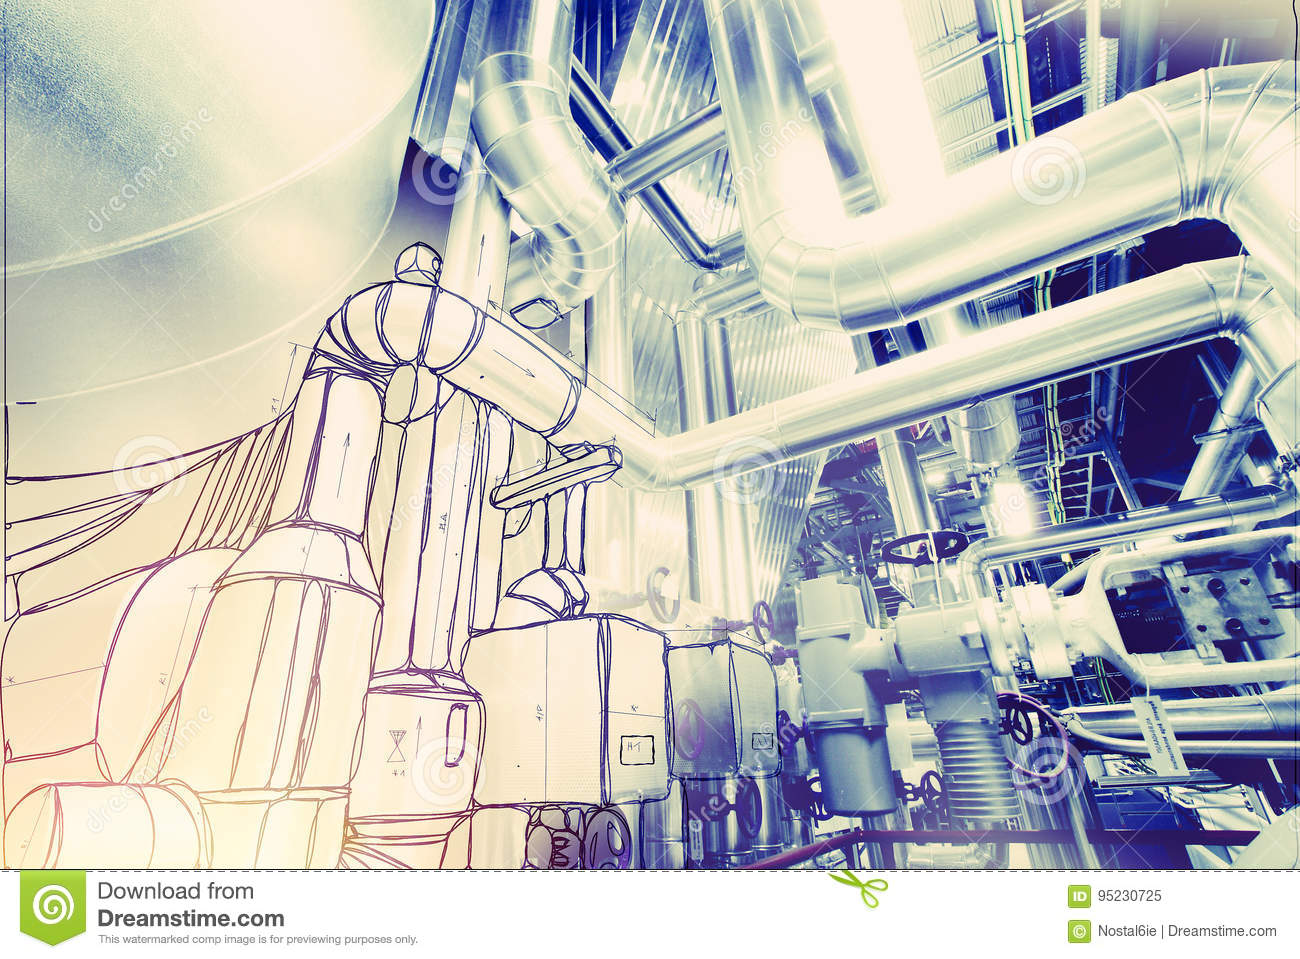 Download Sketch Of Piping Design Concept Stock Image - Image of idea,  imagine: 95230725